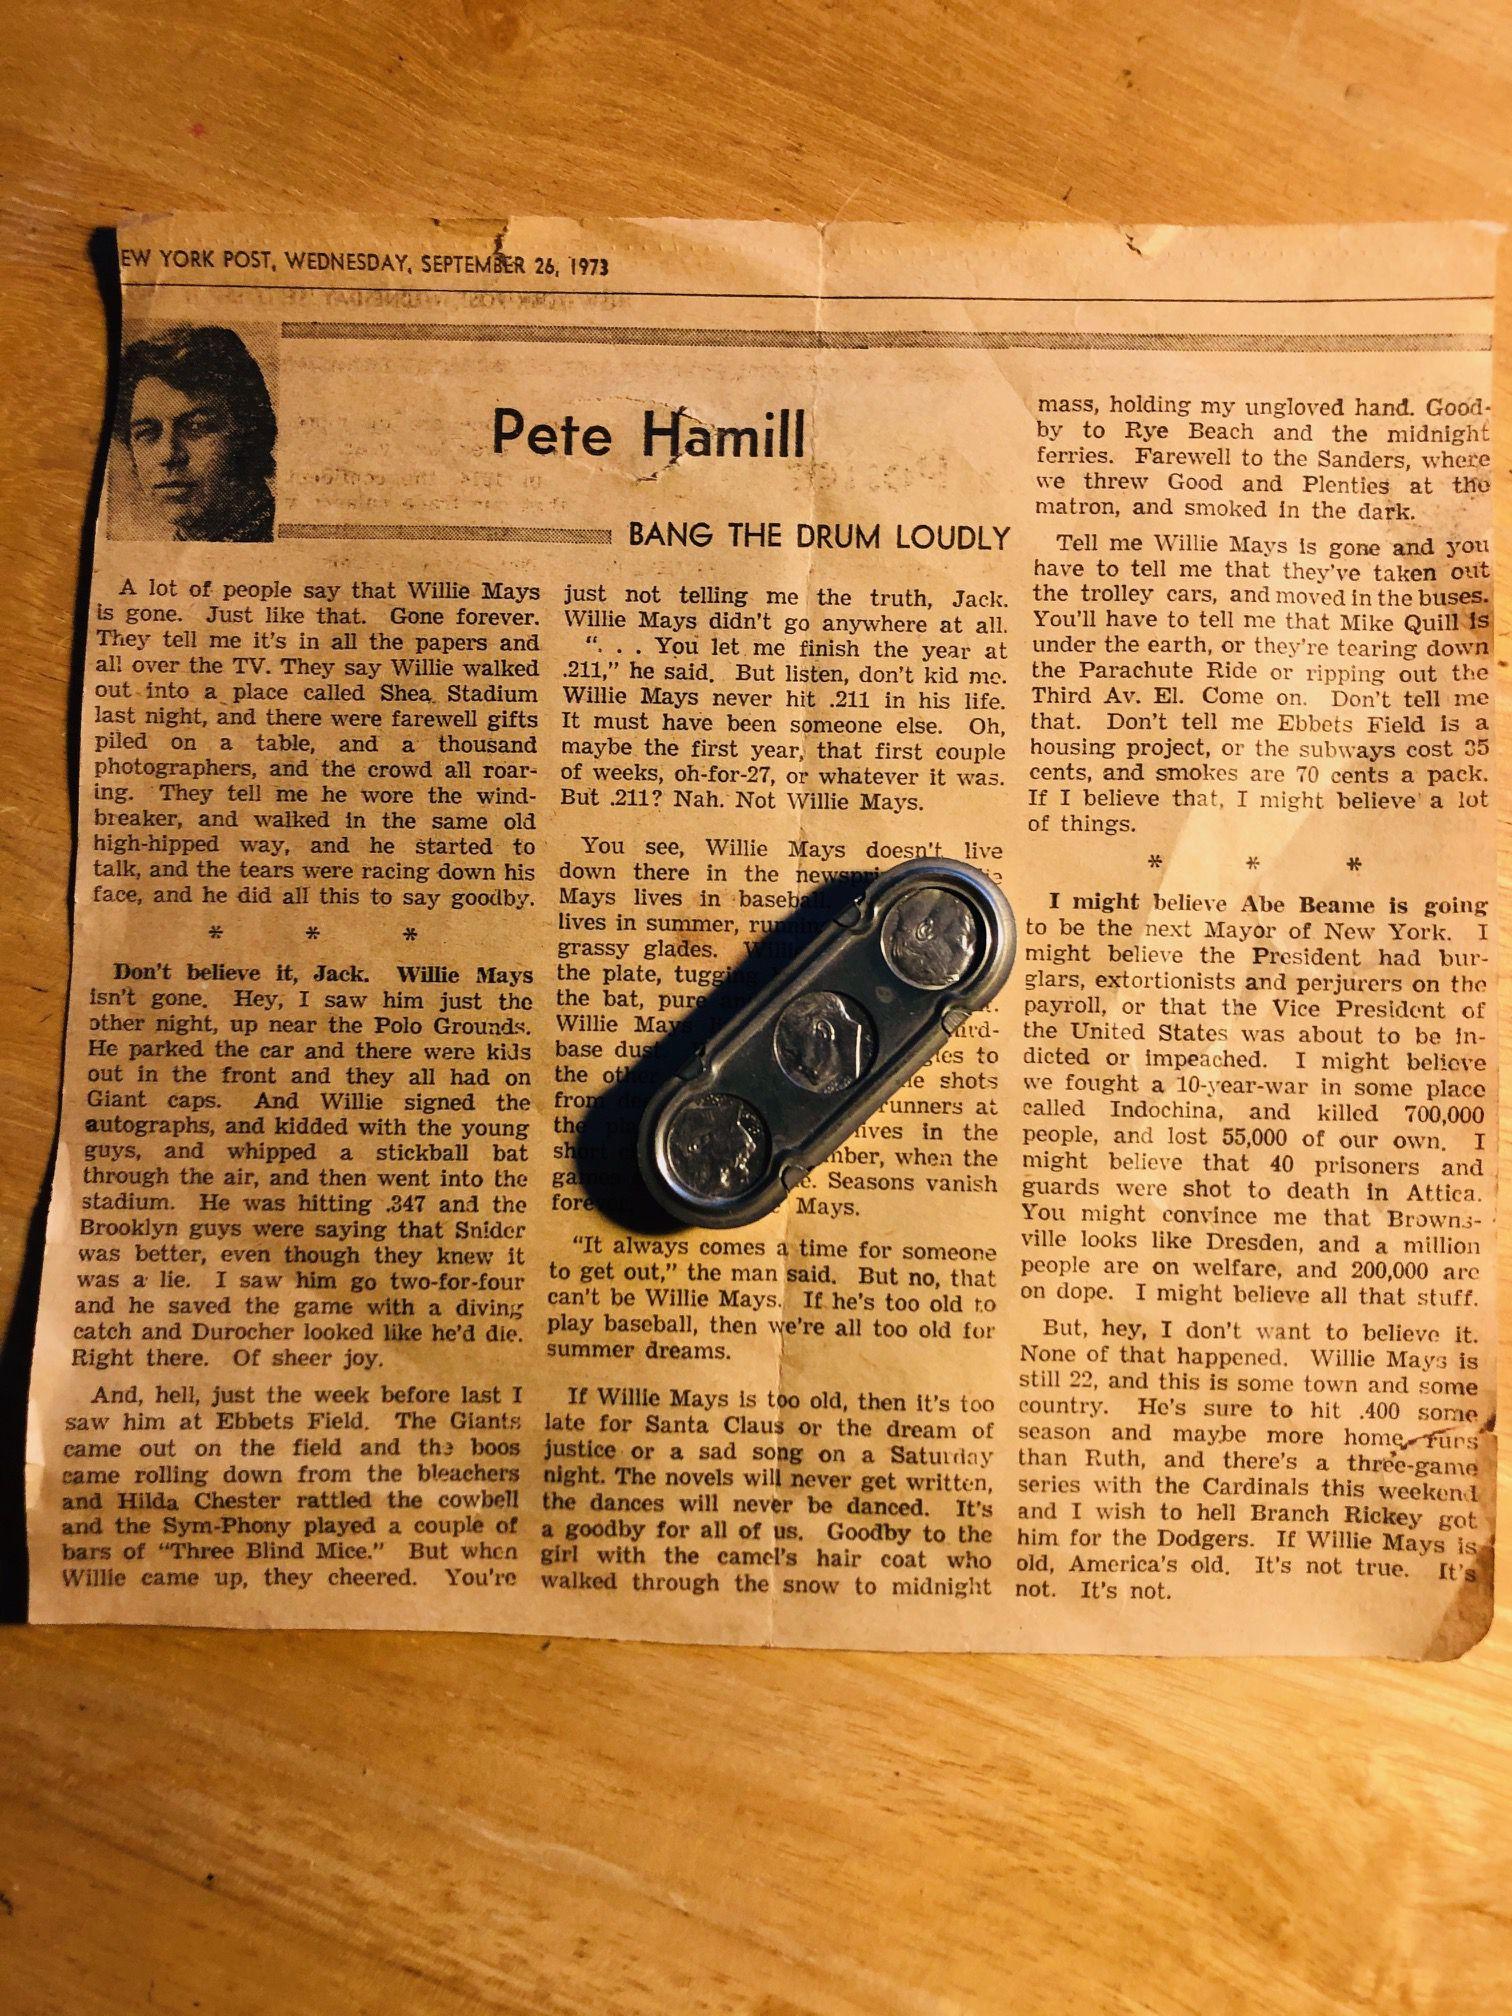 Watchdog columnist Dave Lieber says this dime holder, owned by his late father, represents his start on a career in journalism. Dave's father would slide a dime out and order Dave to go out and get the final edition of the New York Post. That's how Dave discovered Pete Hamill and journalism.